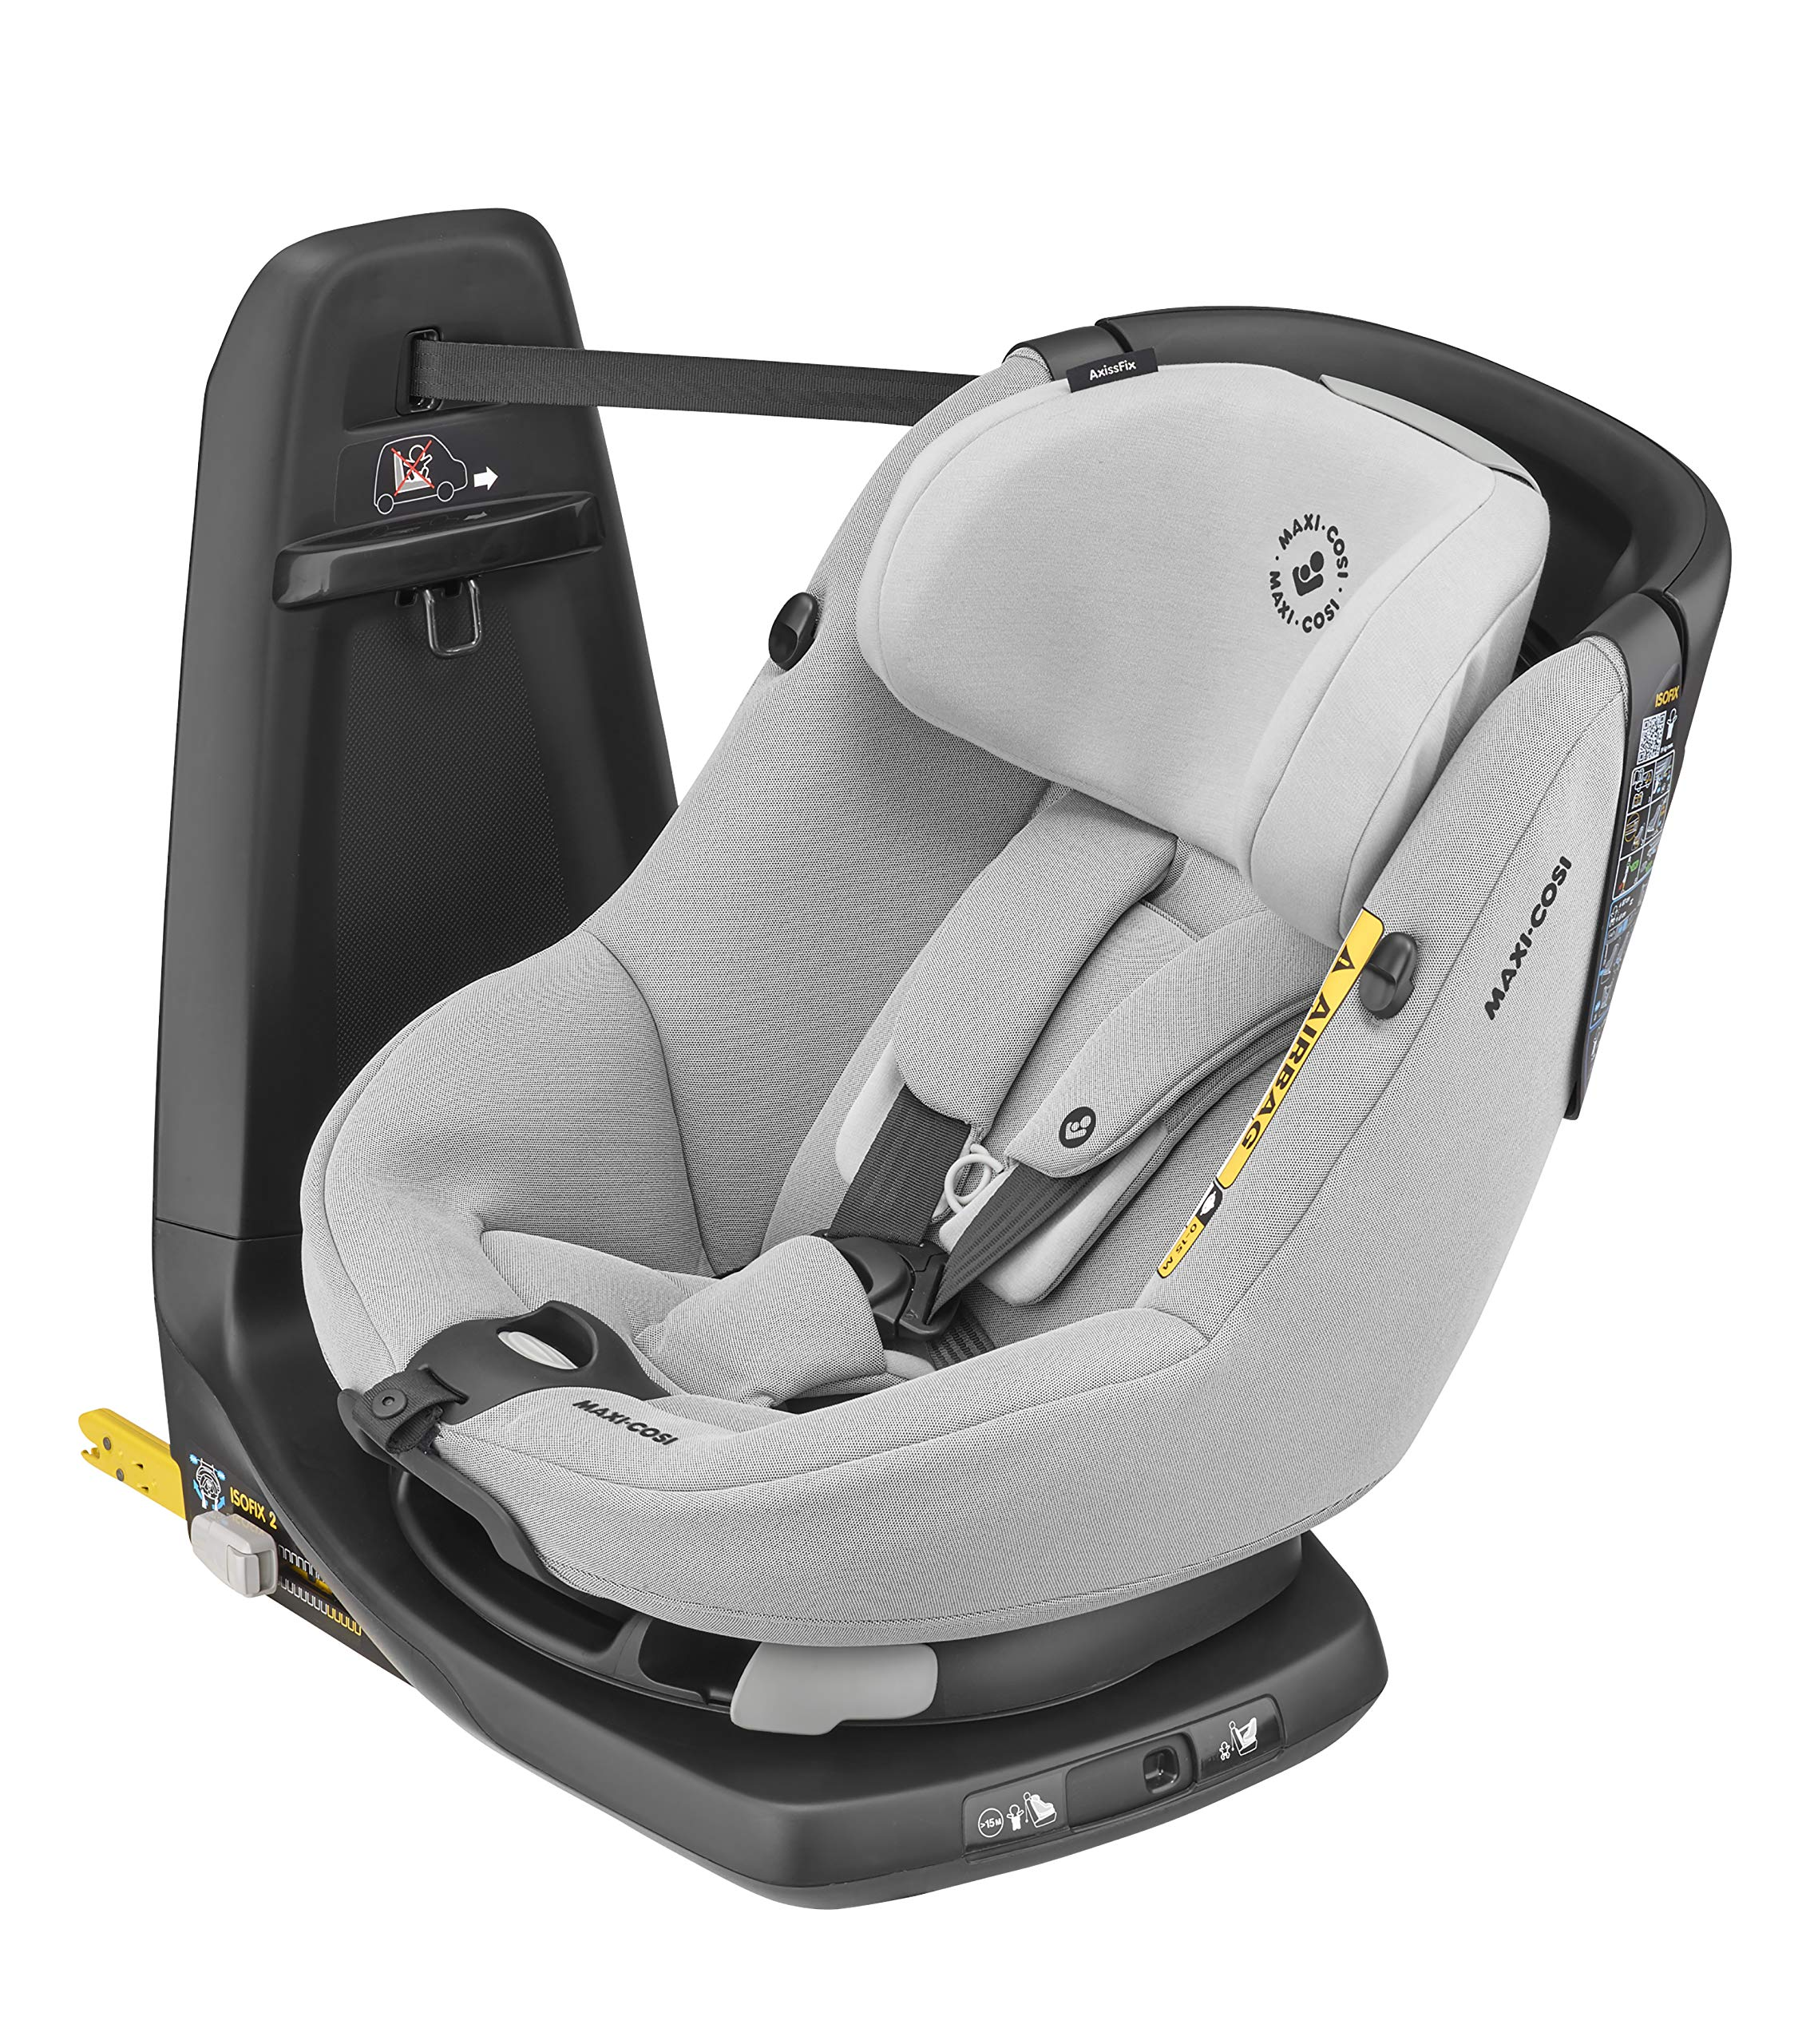 Maxi-Cosi Axissfix Toddler Car Seat, Swivel Car Seat, 4 Months - 4 Years, 61-105 cm, Authentic Grey Maxi-Cosi Toddler car seat, suitable from approx. 4 months up to 4 years (61 - 105 cm) 360° swivel car seat, to easily get your child in and out the seat I-size (r129) car seat legislation, due to extended rearward-facing travel and improved side impact protection 1